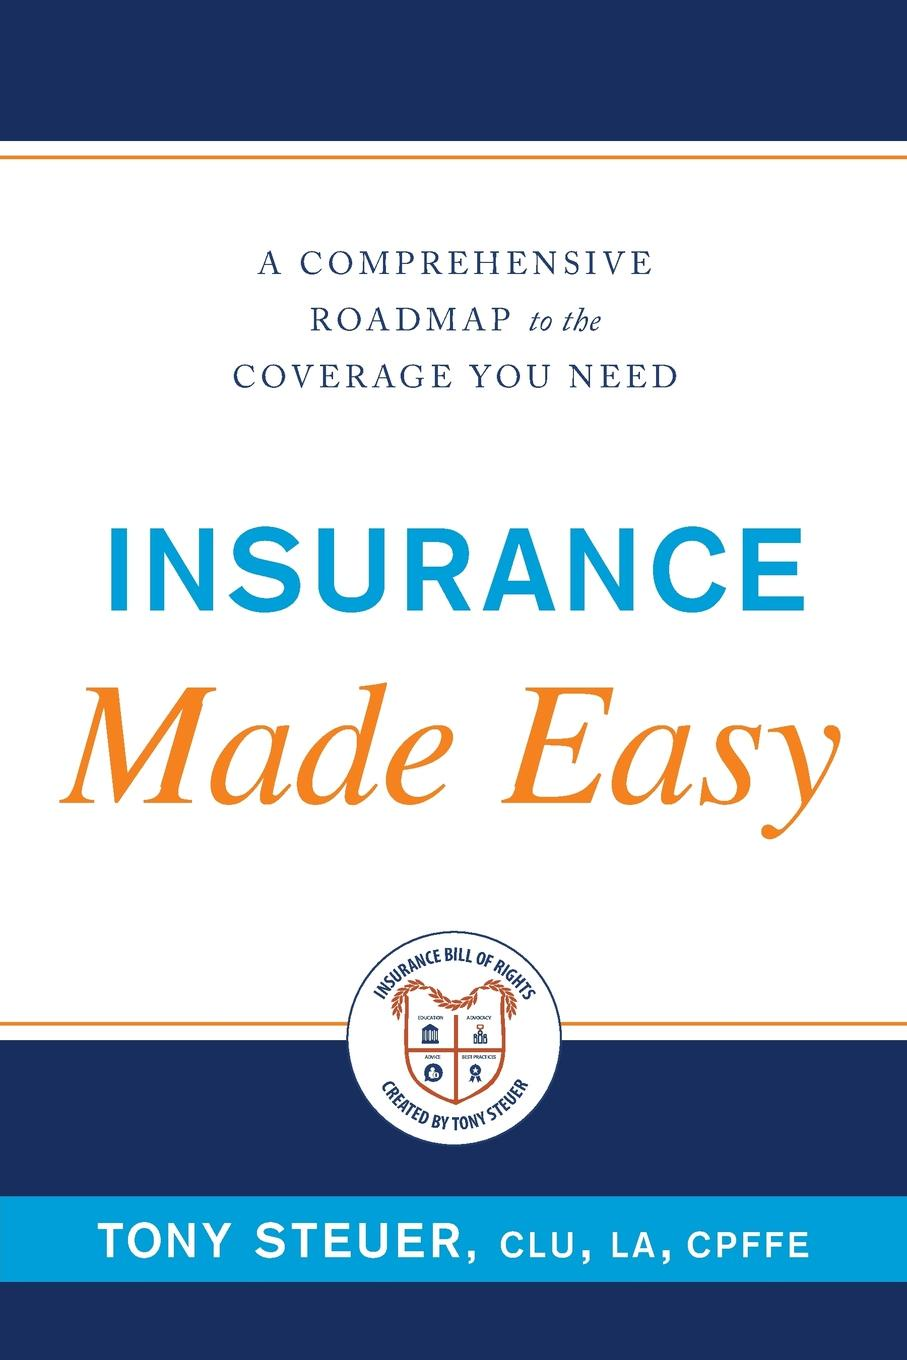 Tony Steuer Insurance Made Easy. A Comprehensive Roadmap to the Coverage You Need free for all – lessons from the rand health insurance experiment paper